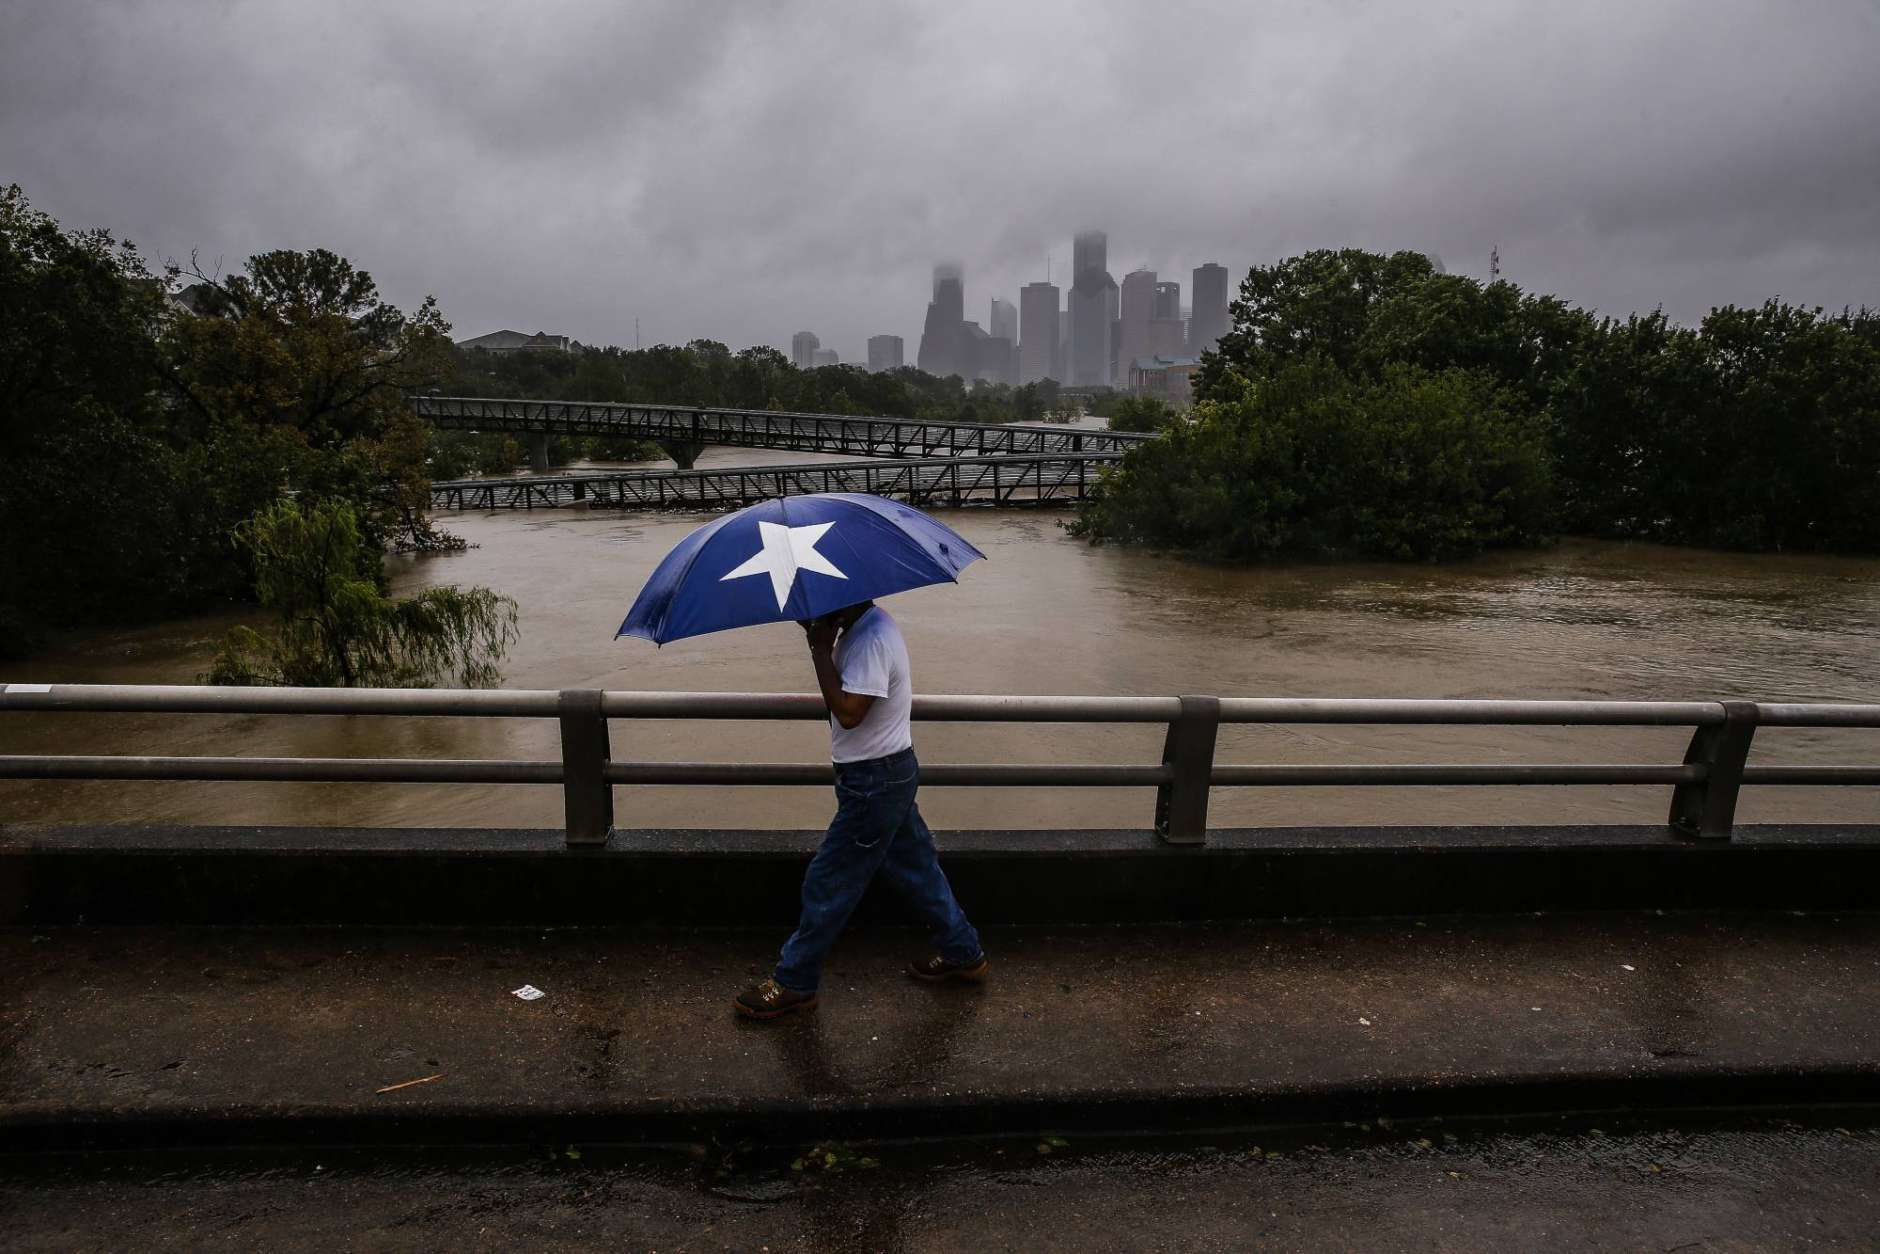 Armando Bustsamante walks along the street over Buffalo Bayou as flood waters from Tropical Storm Harvey flow toward downtown Houston Tuesday, Aug. 29, 2017.  More than 17,000 people are seeking refuge in Texas shelters, the American Red Cross said. With rescues continuing, that number seemed certain to grow. (Michael Ciaglo/Houston Chronicle via AP)